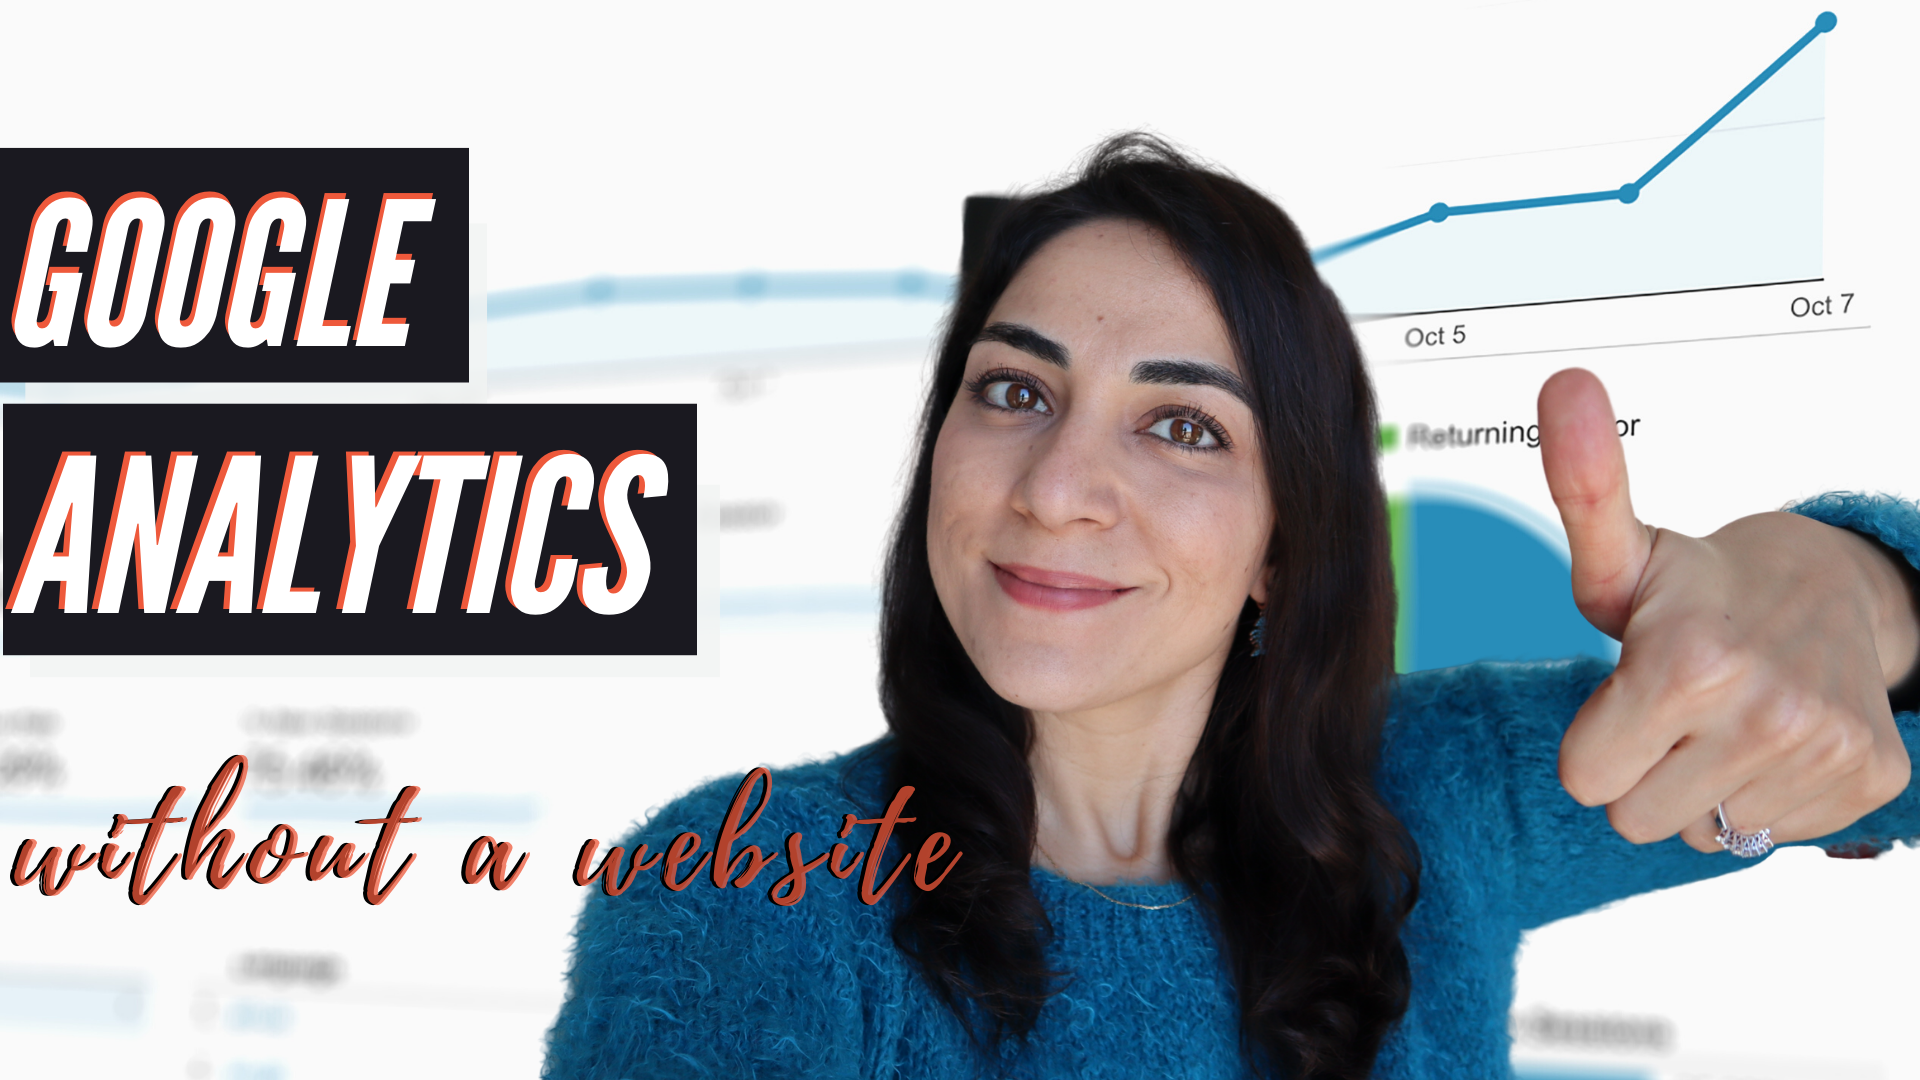 How To Learn Google Analytics [Without Having A Website]